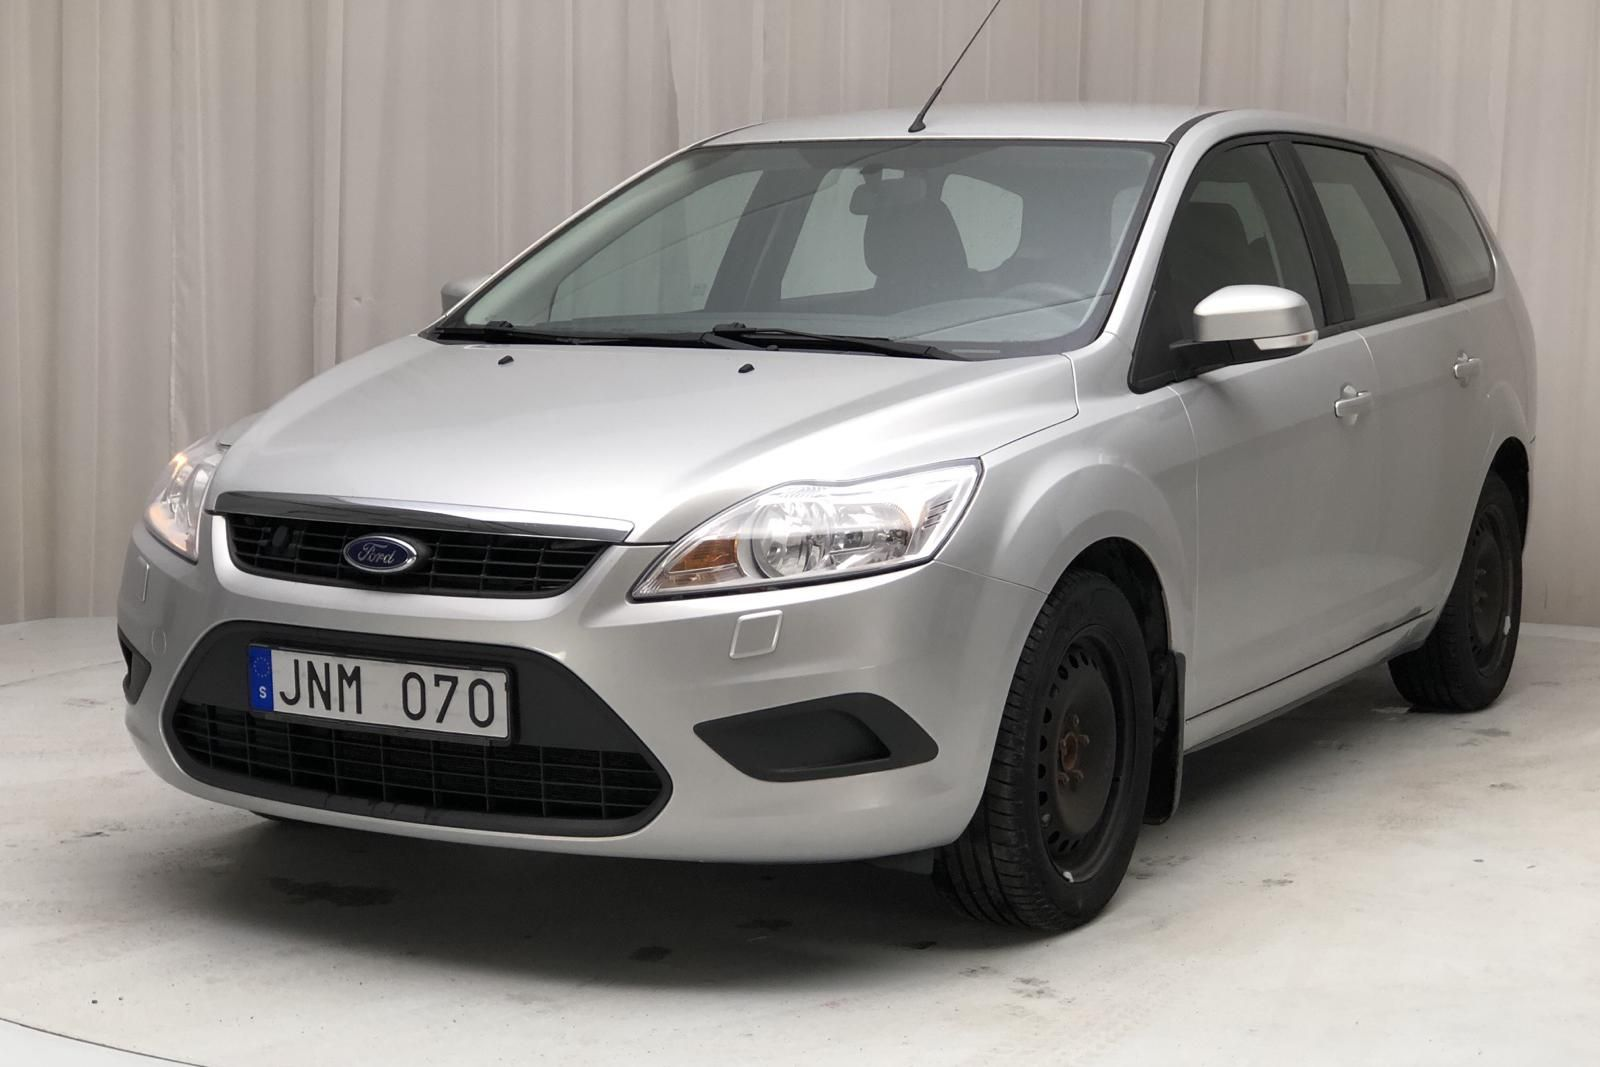 Ford Focus 1.8 FlexiFuel Kombi (125hk)